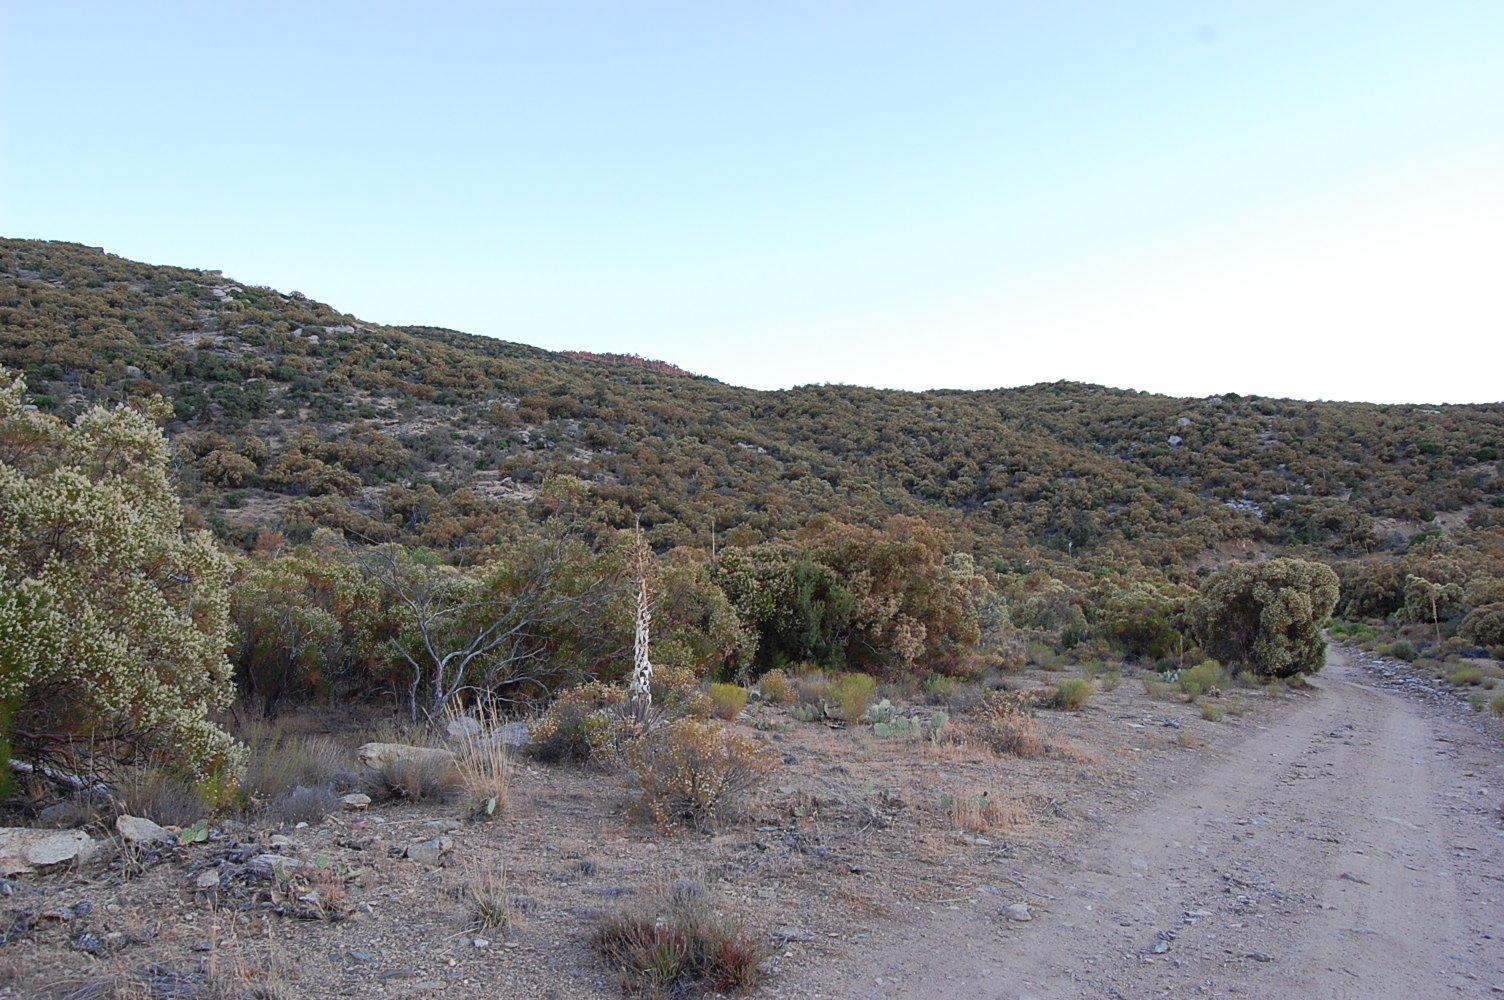 Magnificent 1 Acre Escape 45 minutes from Palm Springs - Image 0